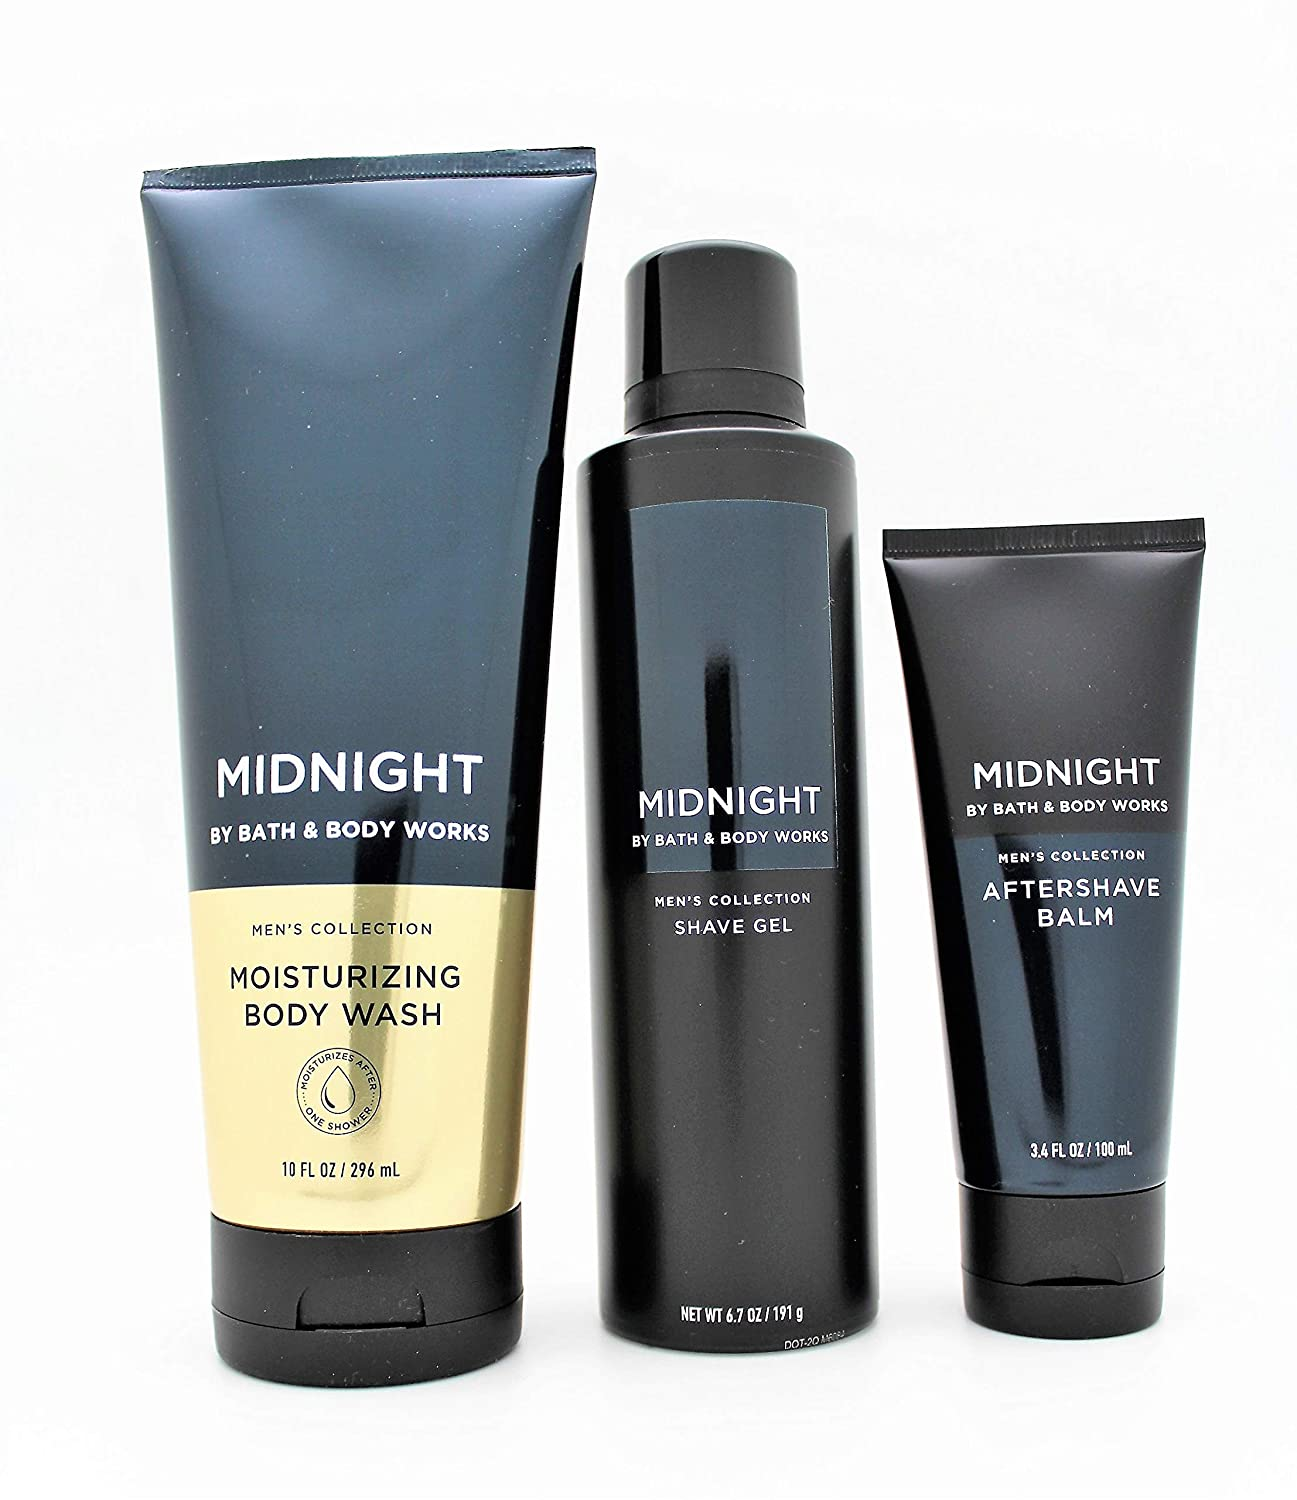 Bath and Body Works - Men's Collection – Midnight - Moisturizing Body Wash, Shave Gel and Aftershave Balm - 3 pc Bundle